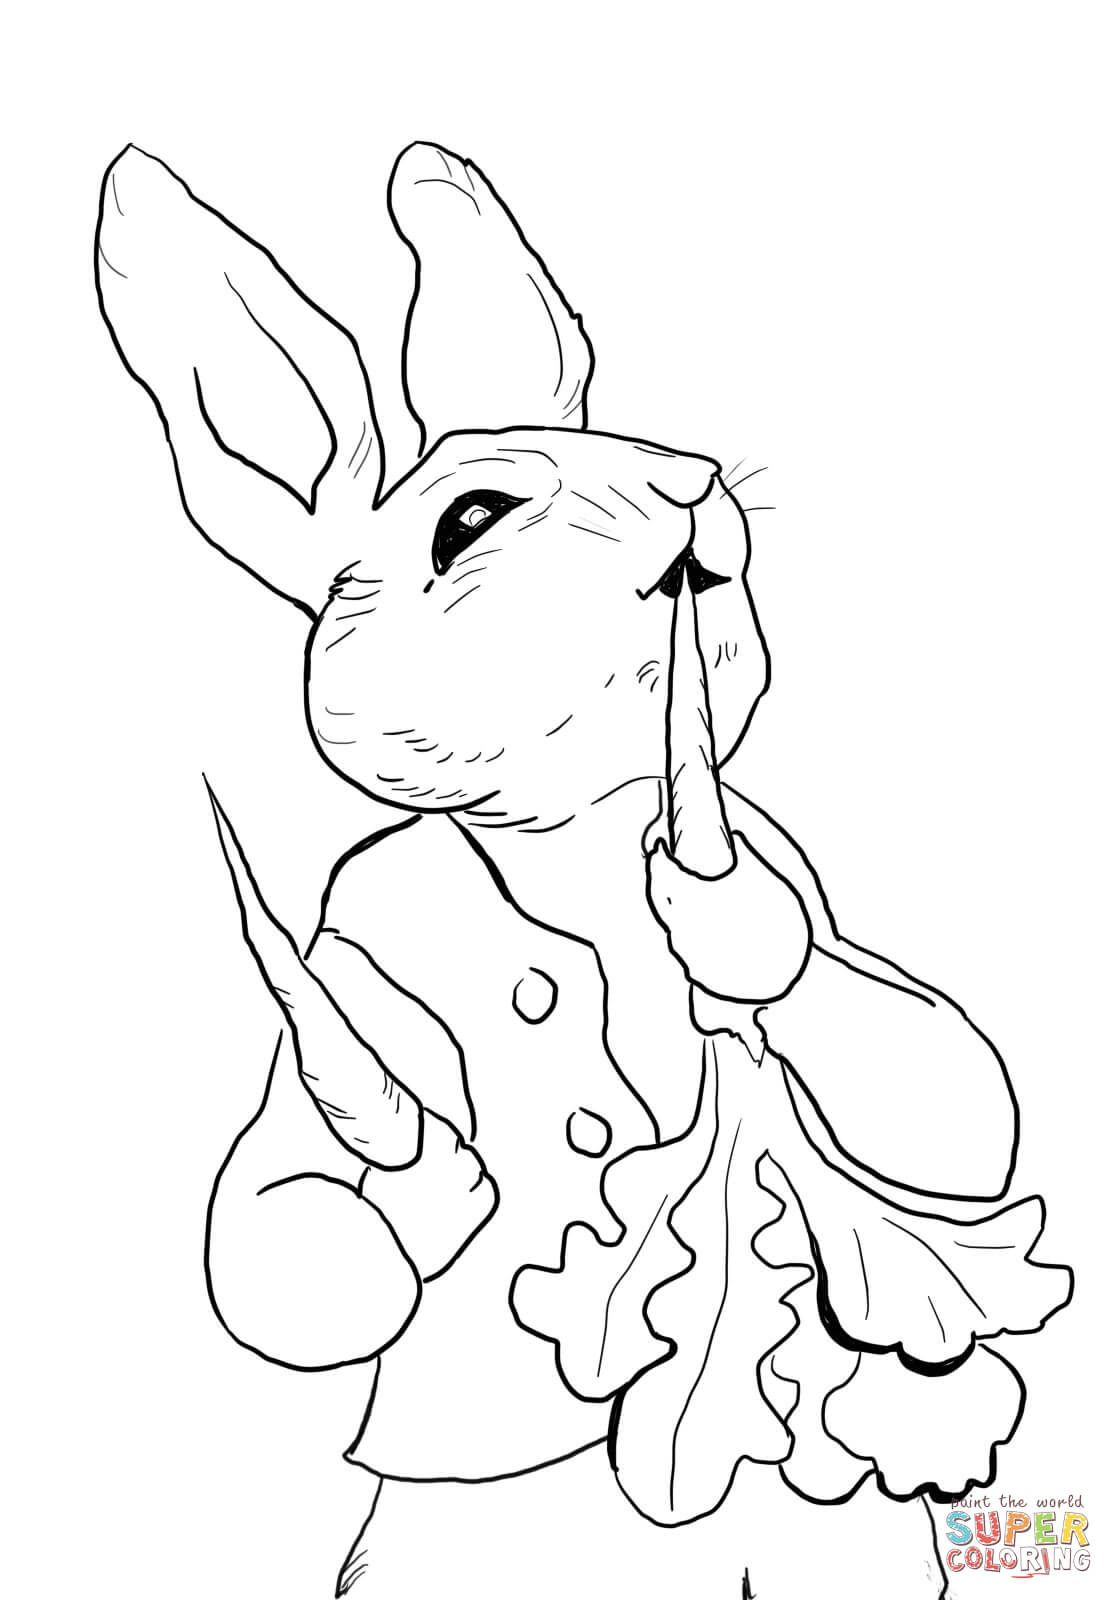 Peter Rabbit Coloring Pages Printable Bunny Coloring Pages Peter Rabbit Illustration Rabbit Colors